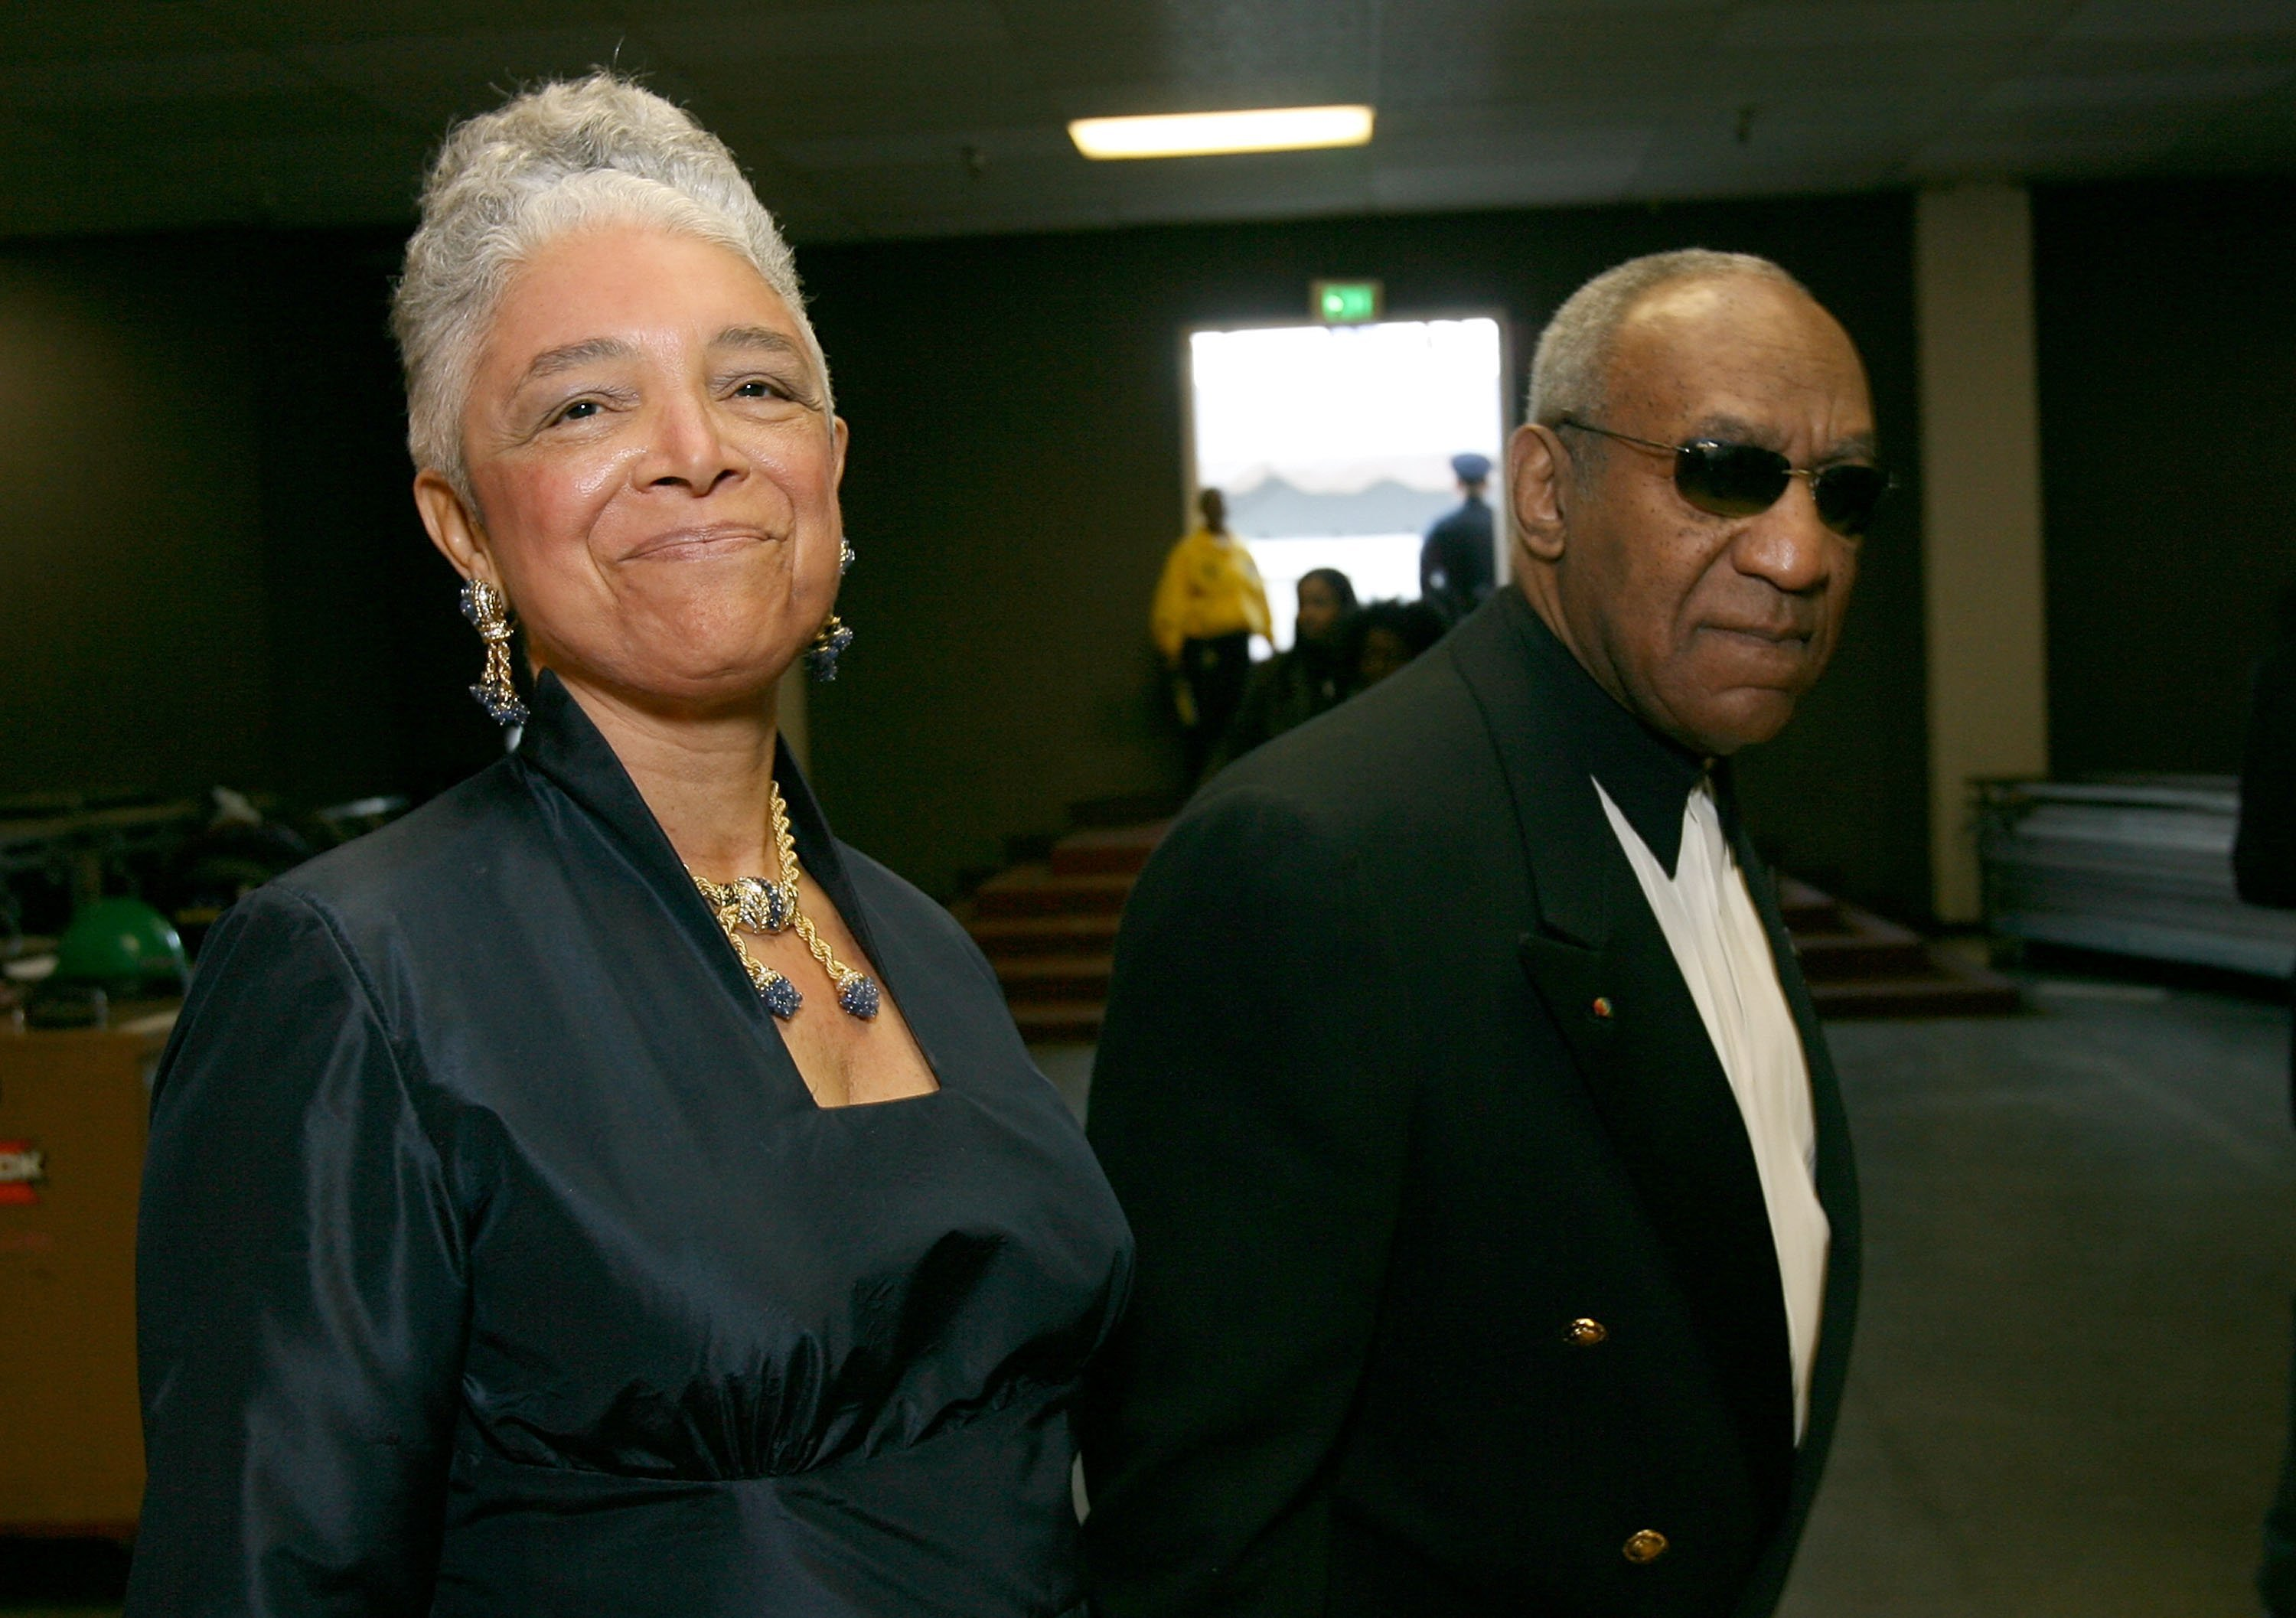 Comedian Bill Cosby and wife Camille O. Cosby walk backstage during the 38th annual NAACP Image Awards held at the Shrine Auditorium on March 2, 2007, in Los Angeles, California. | Source: Getty Images.